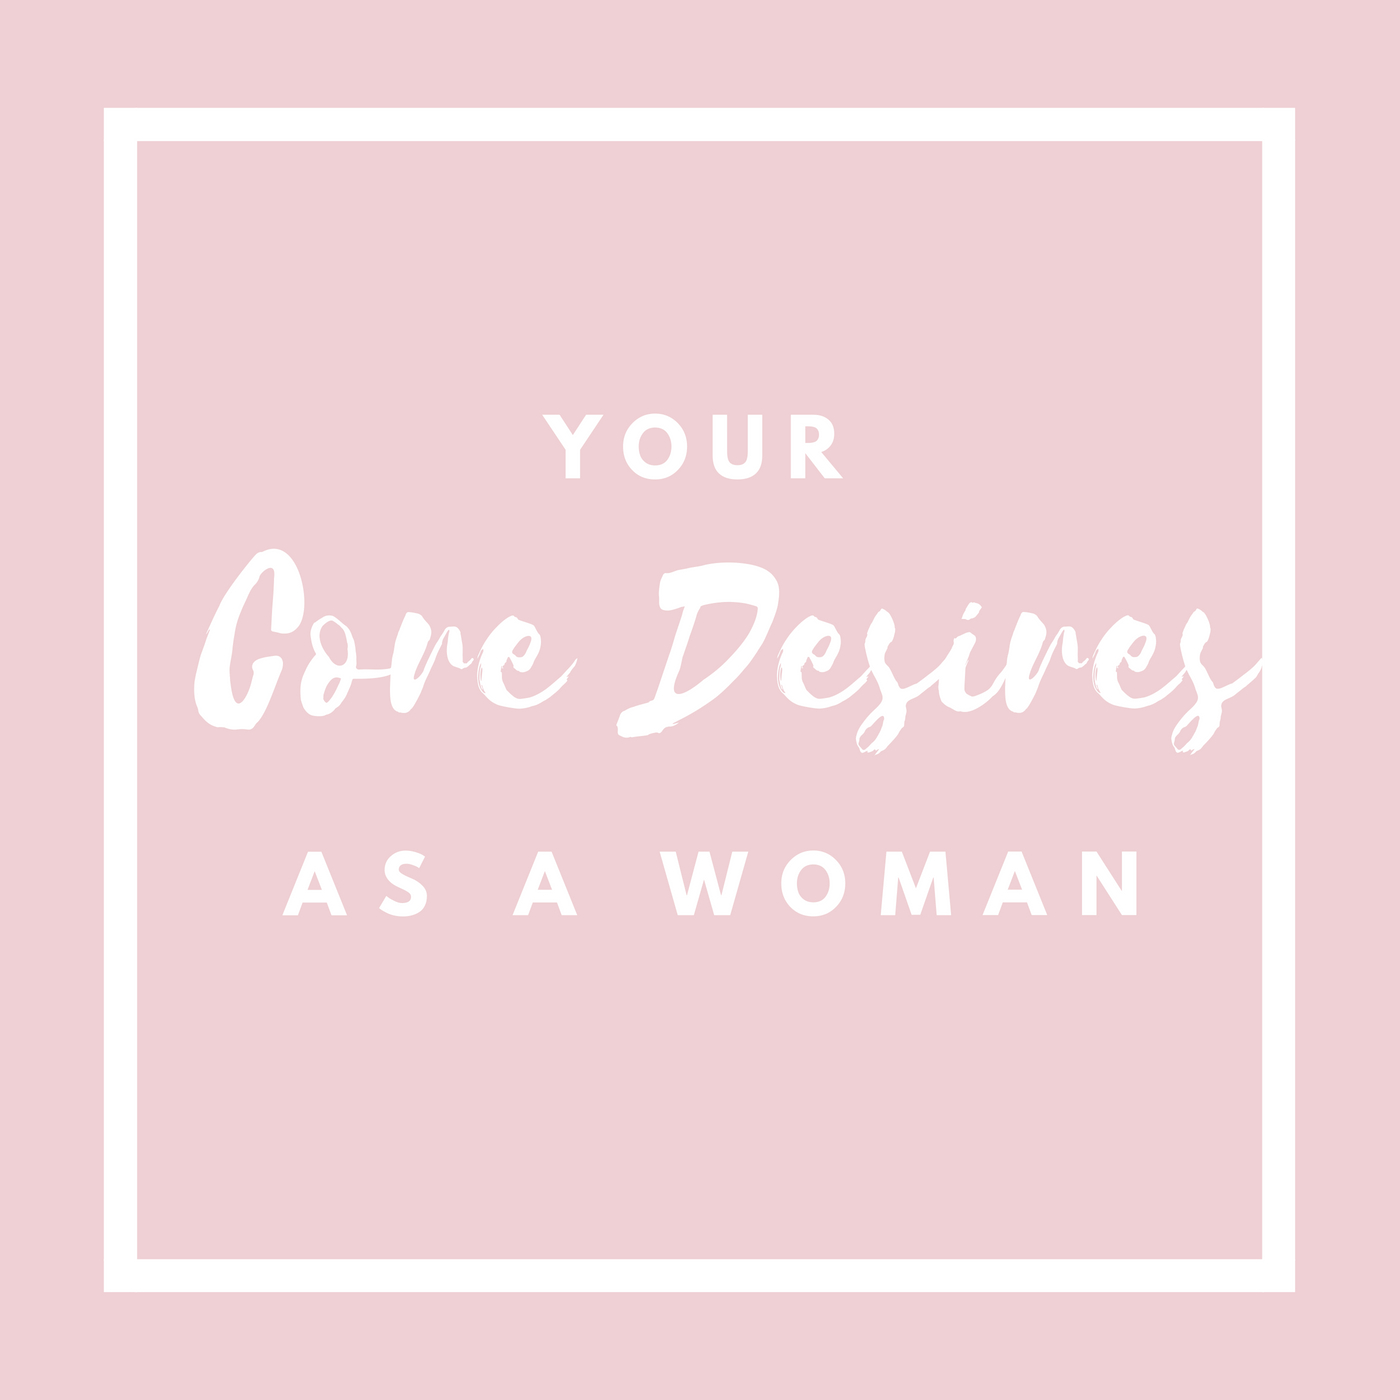 Your Core Desires As A Woman Graphic.jpg